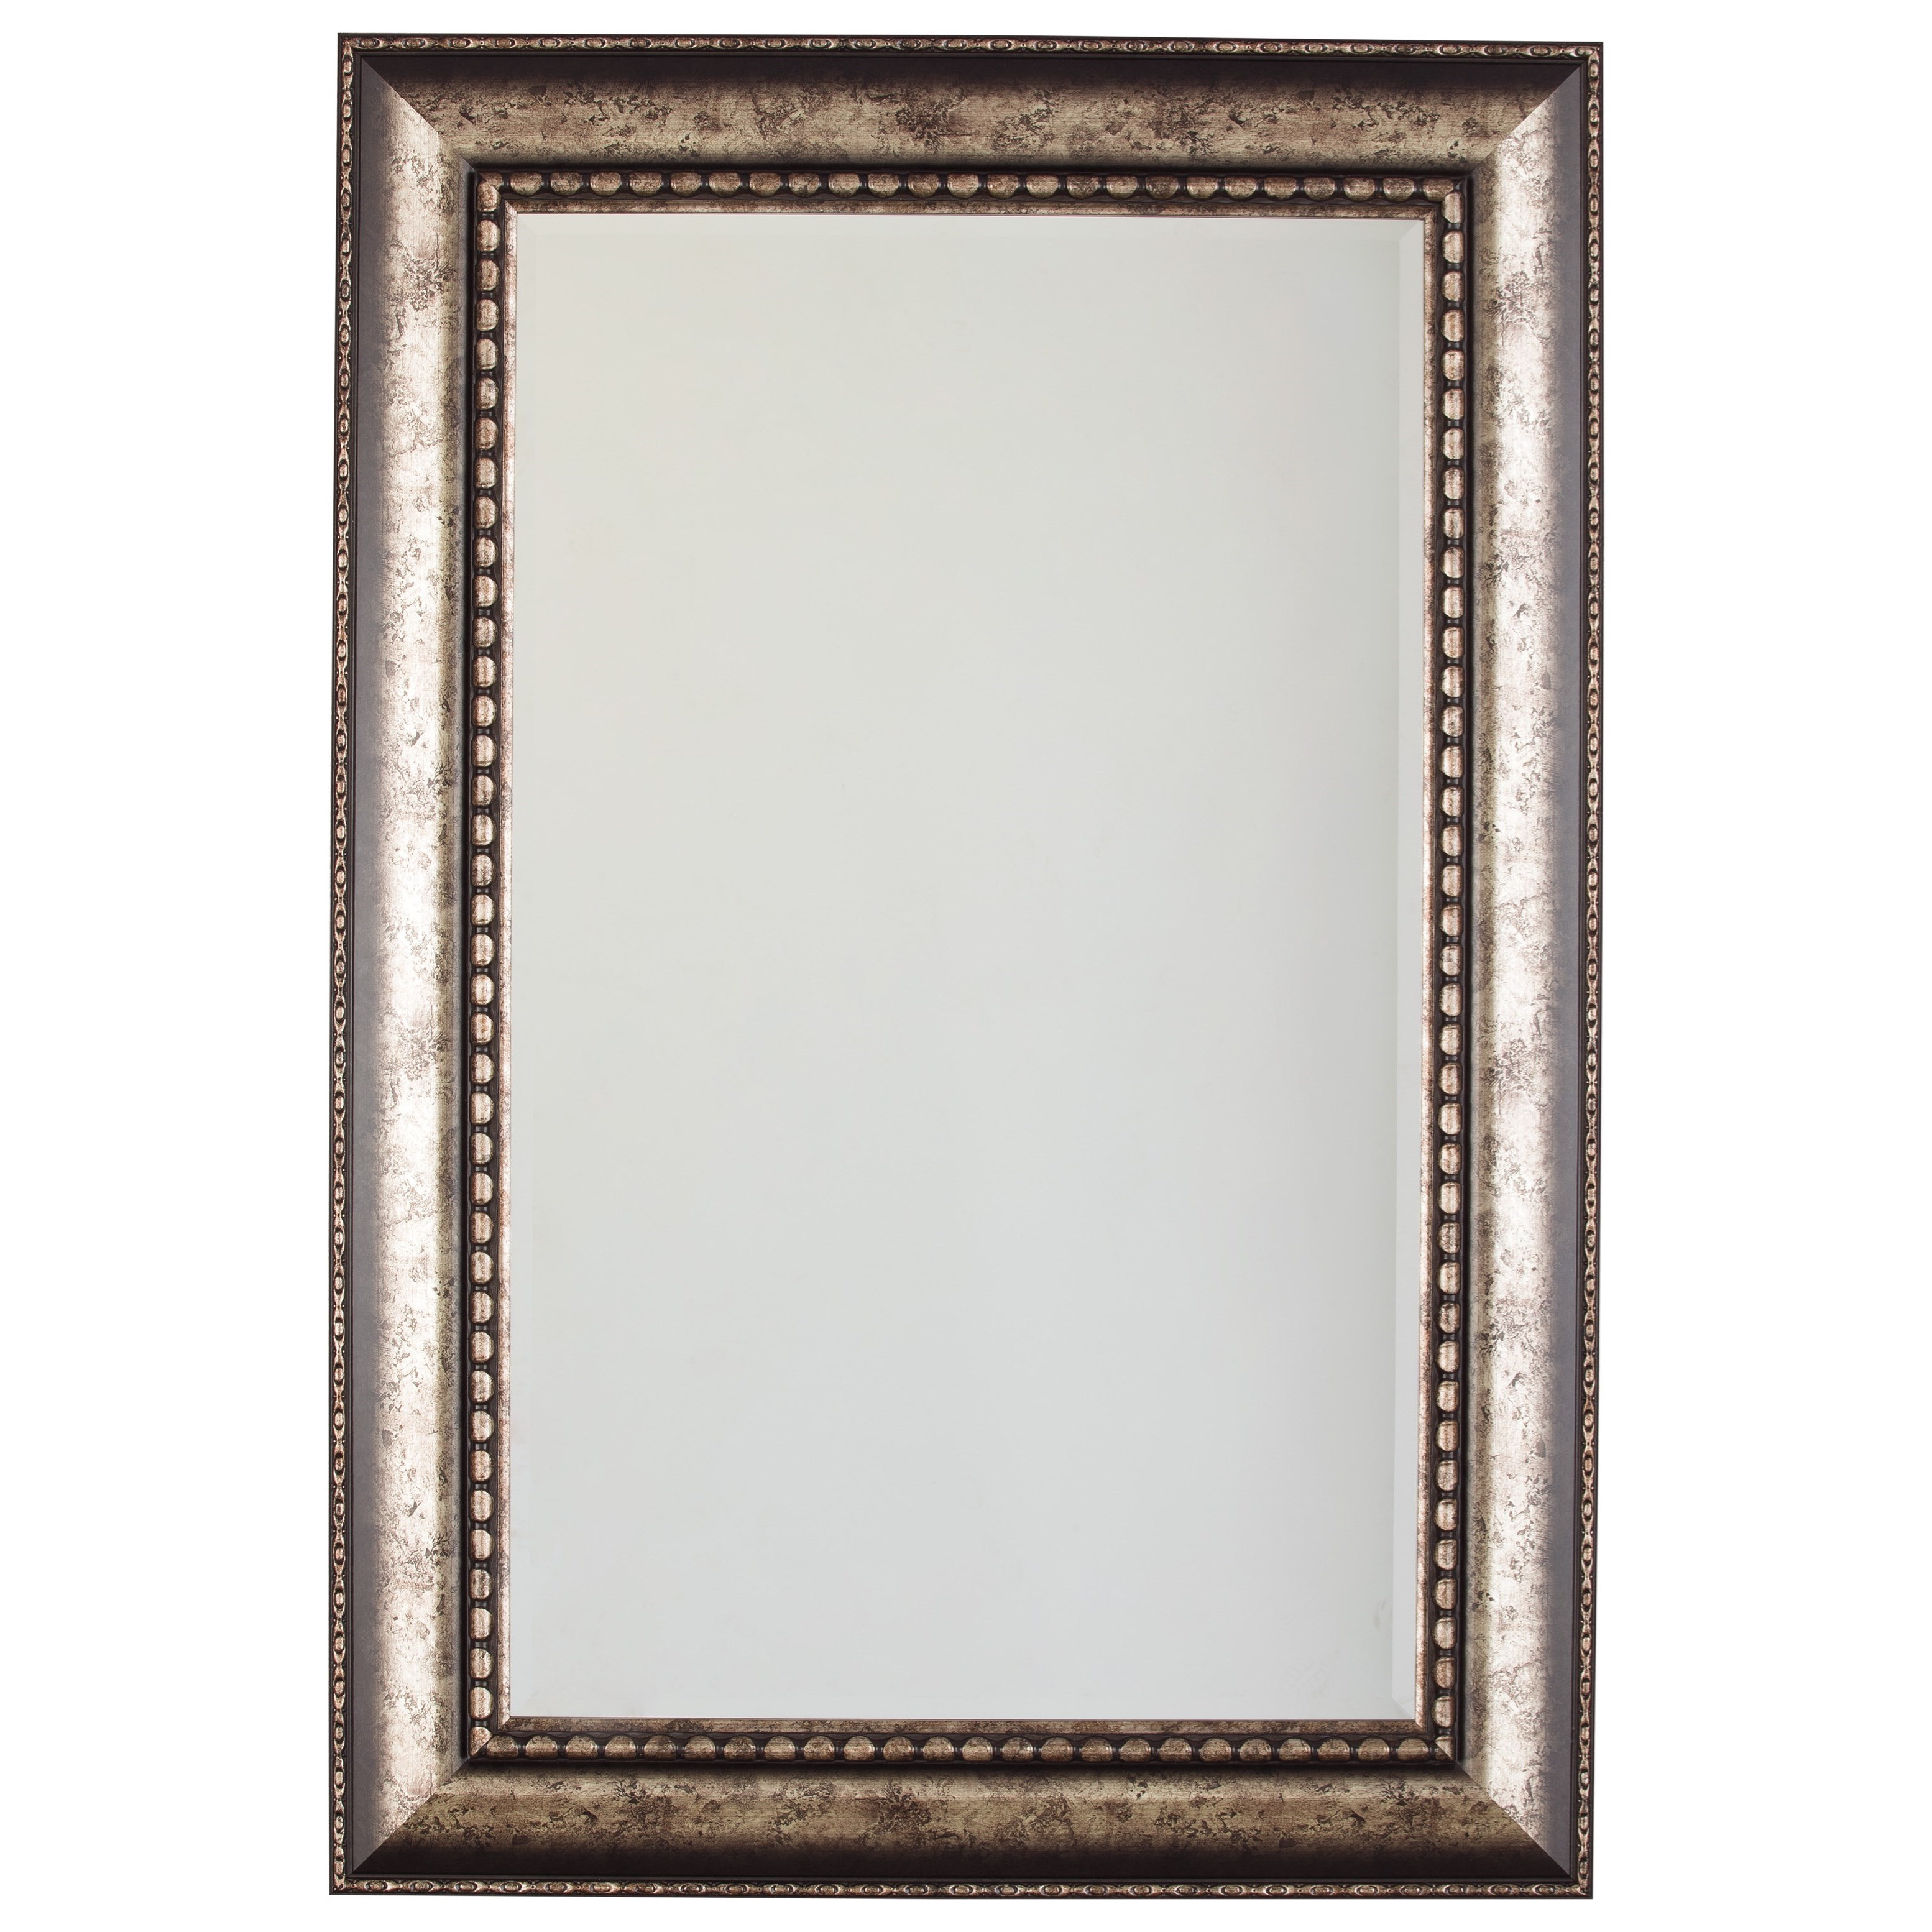 Signature Design by Ashley Accent Mirrors Dulal Antique Silver Finish Accent Mirror - Item Number: A8010082